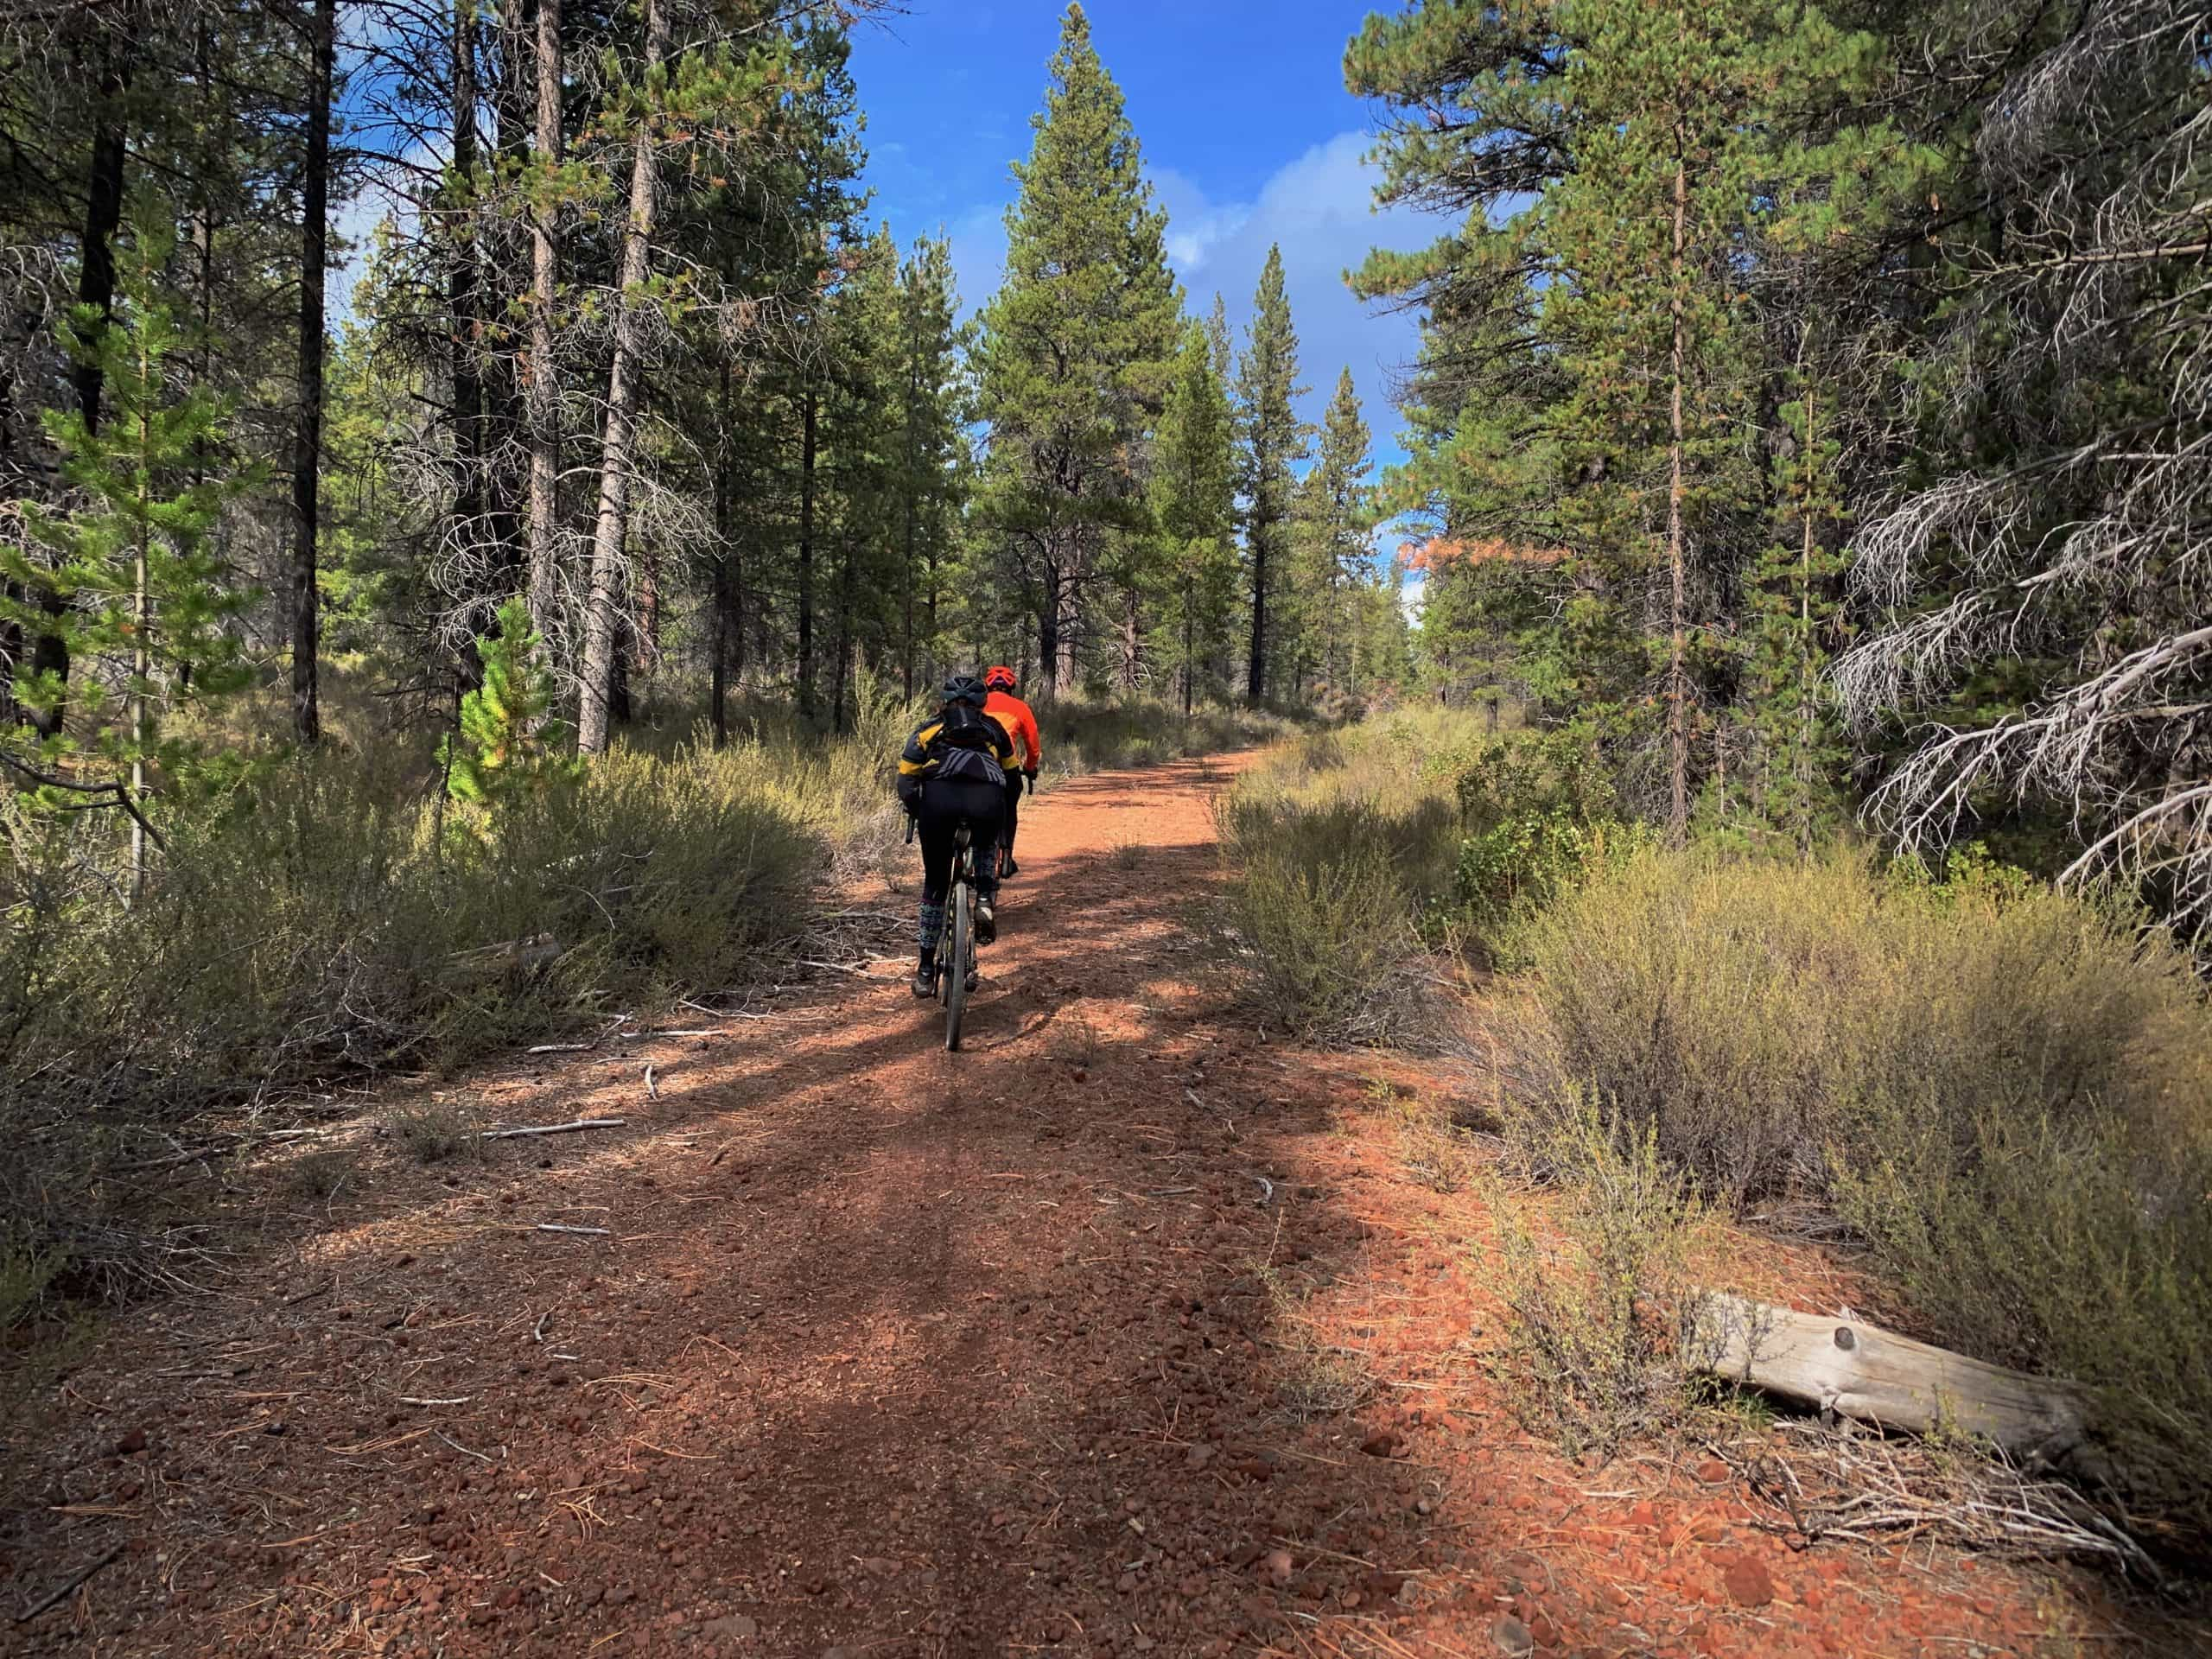 Two gravel cyclists on the double track dirt path above the Deschutes River near the slew in the Deschutes National Forest.